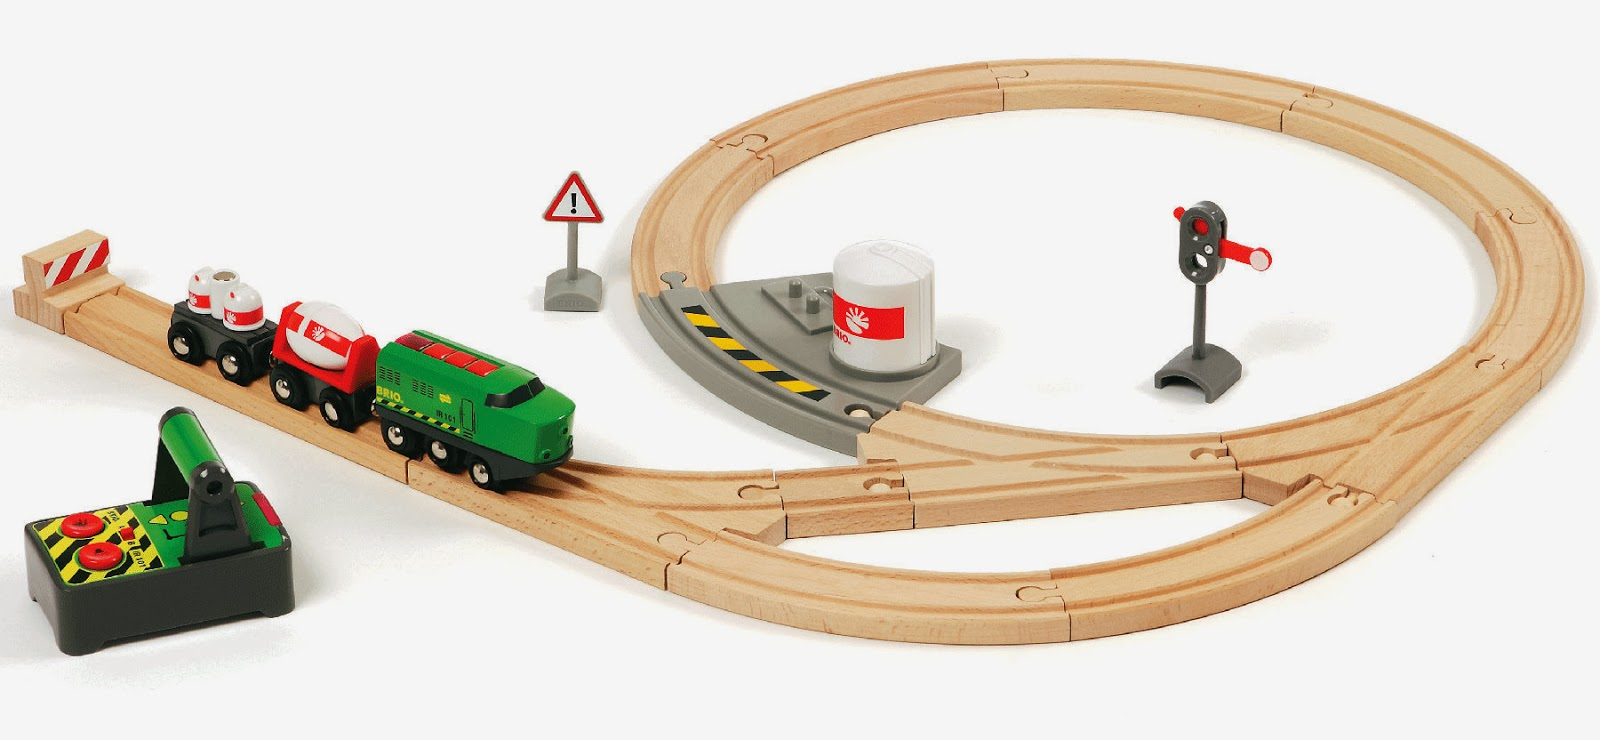 Brio train not moving properly